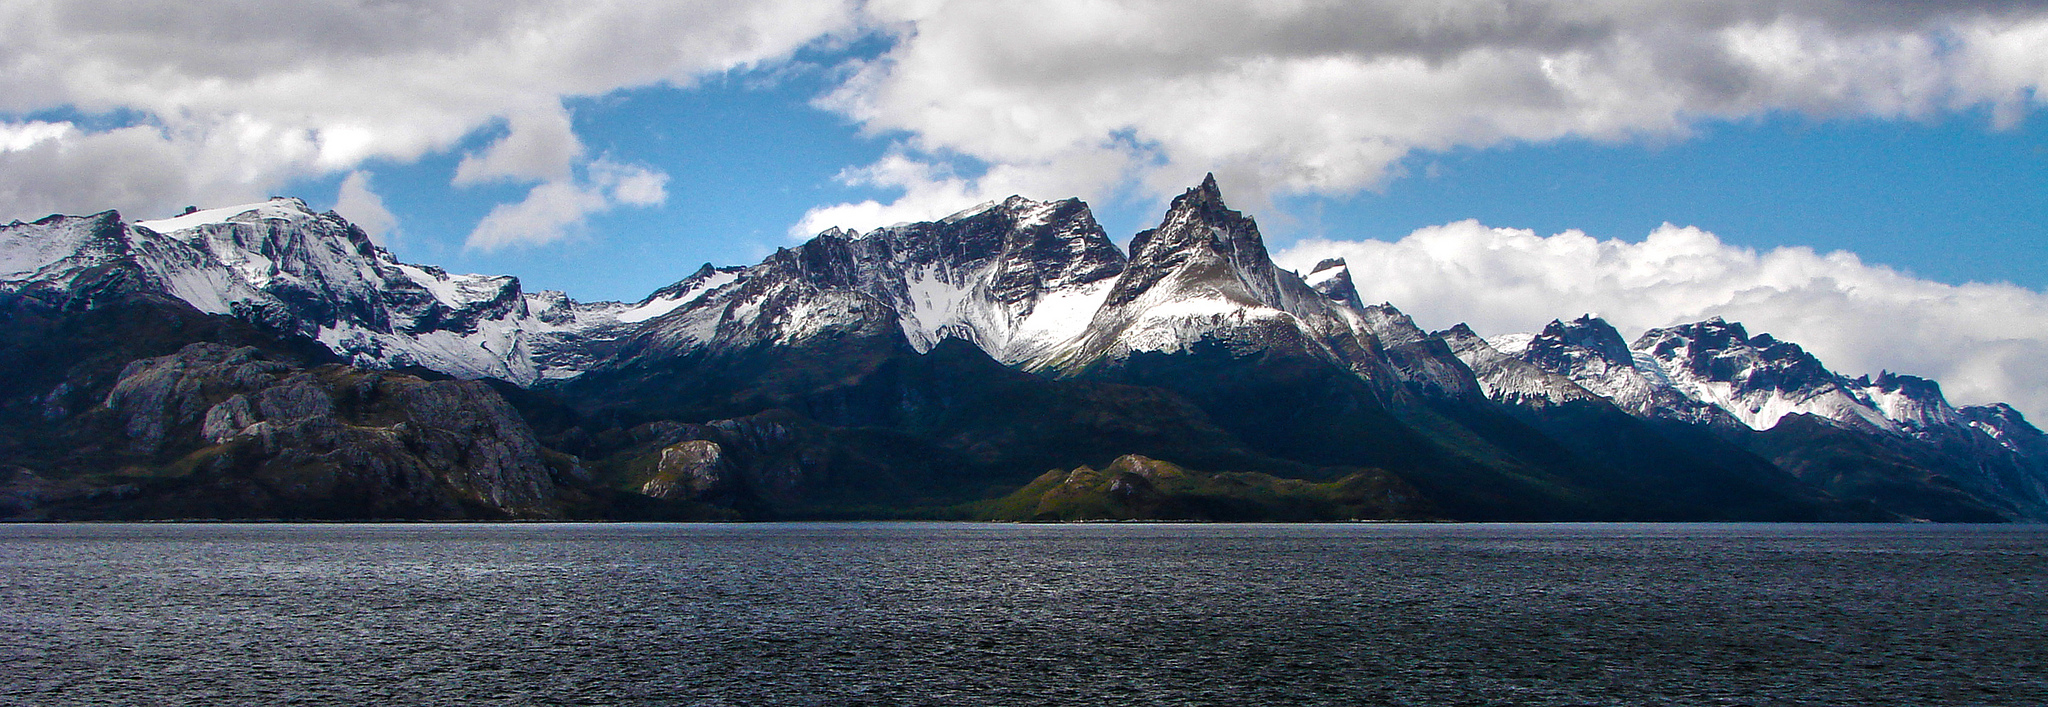 Cordillera Darwin Mountain Range In Chile Thousand Wonders